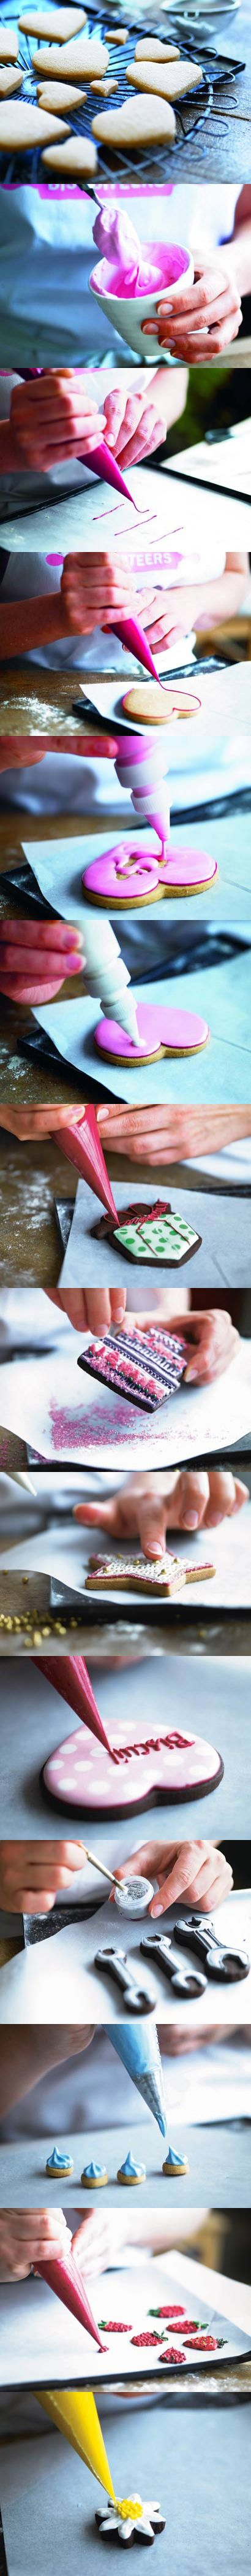 How to ice biscuits. Learn how to using different icing techniques to ice biscuits and cakes with our step-by-step guide